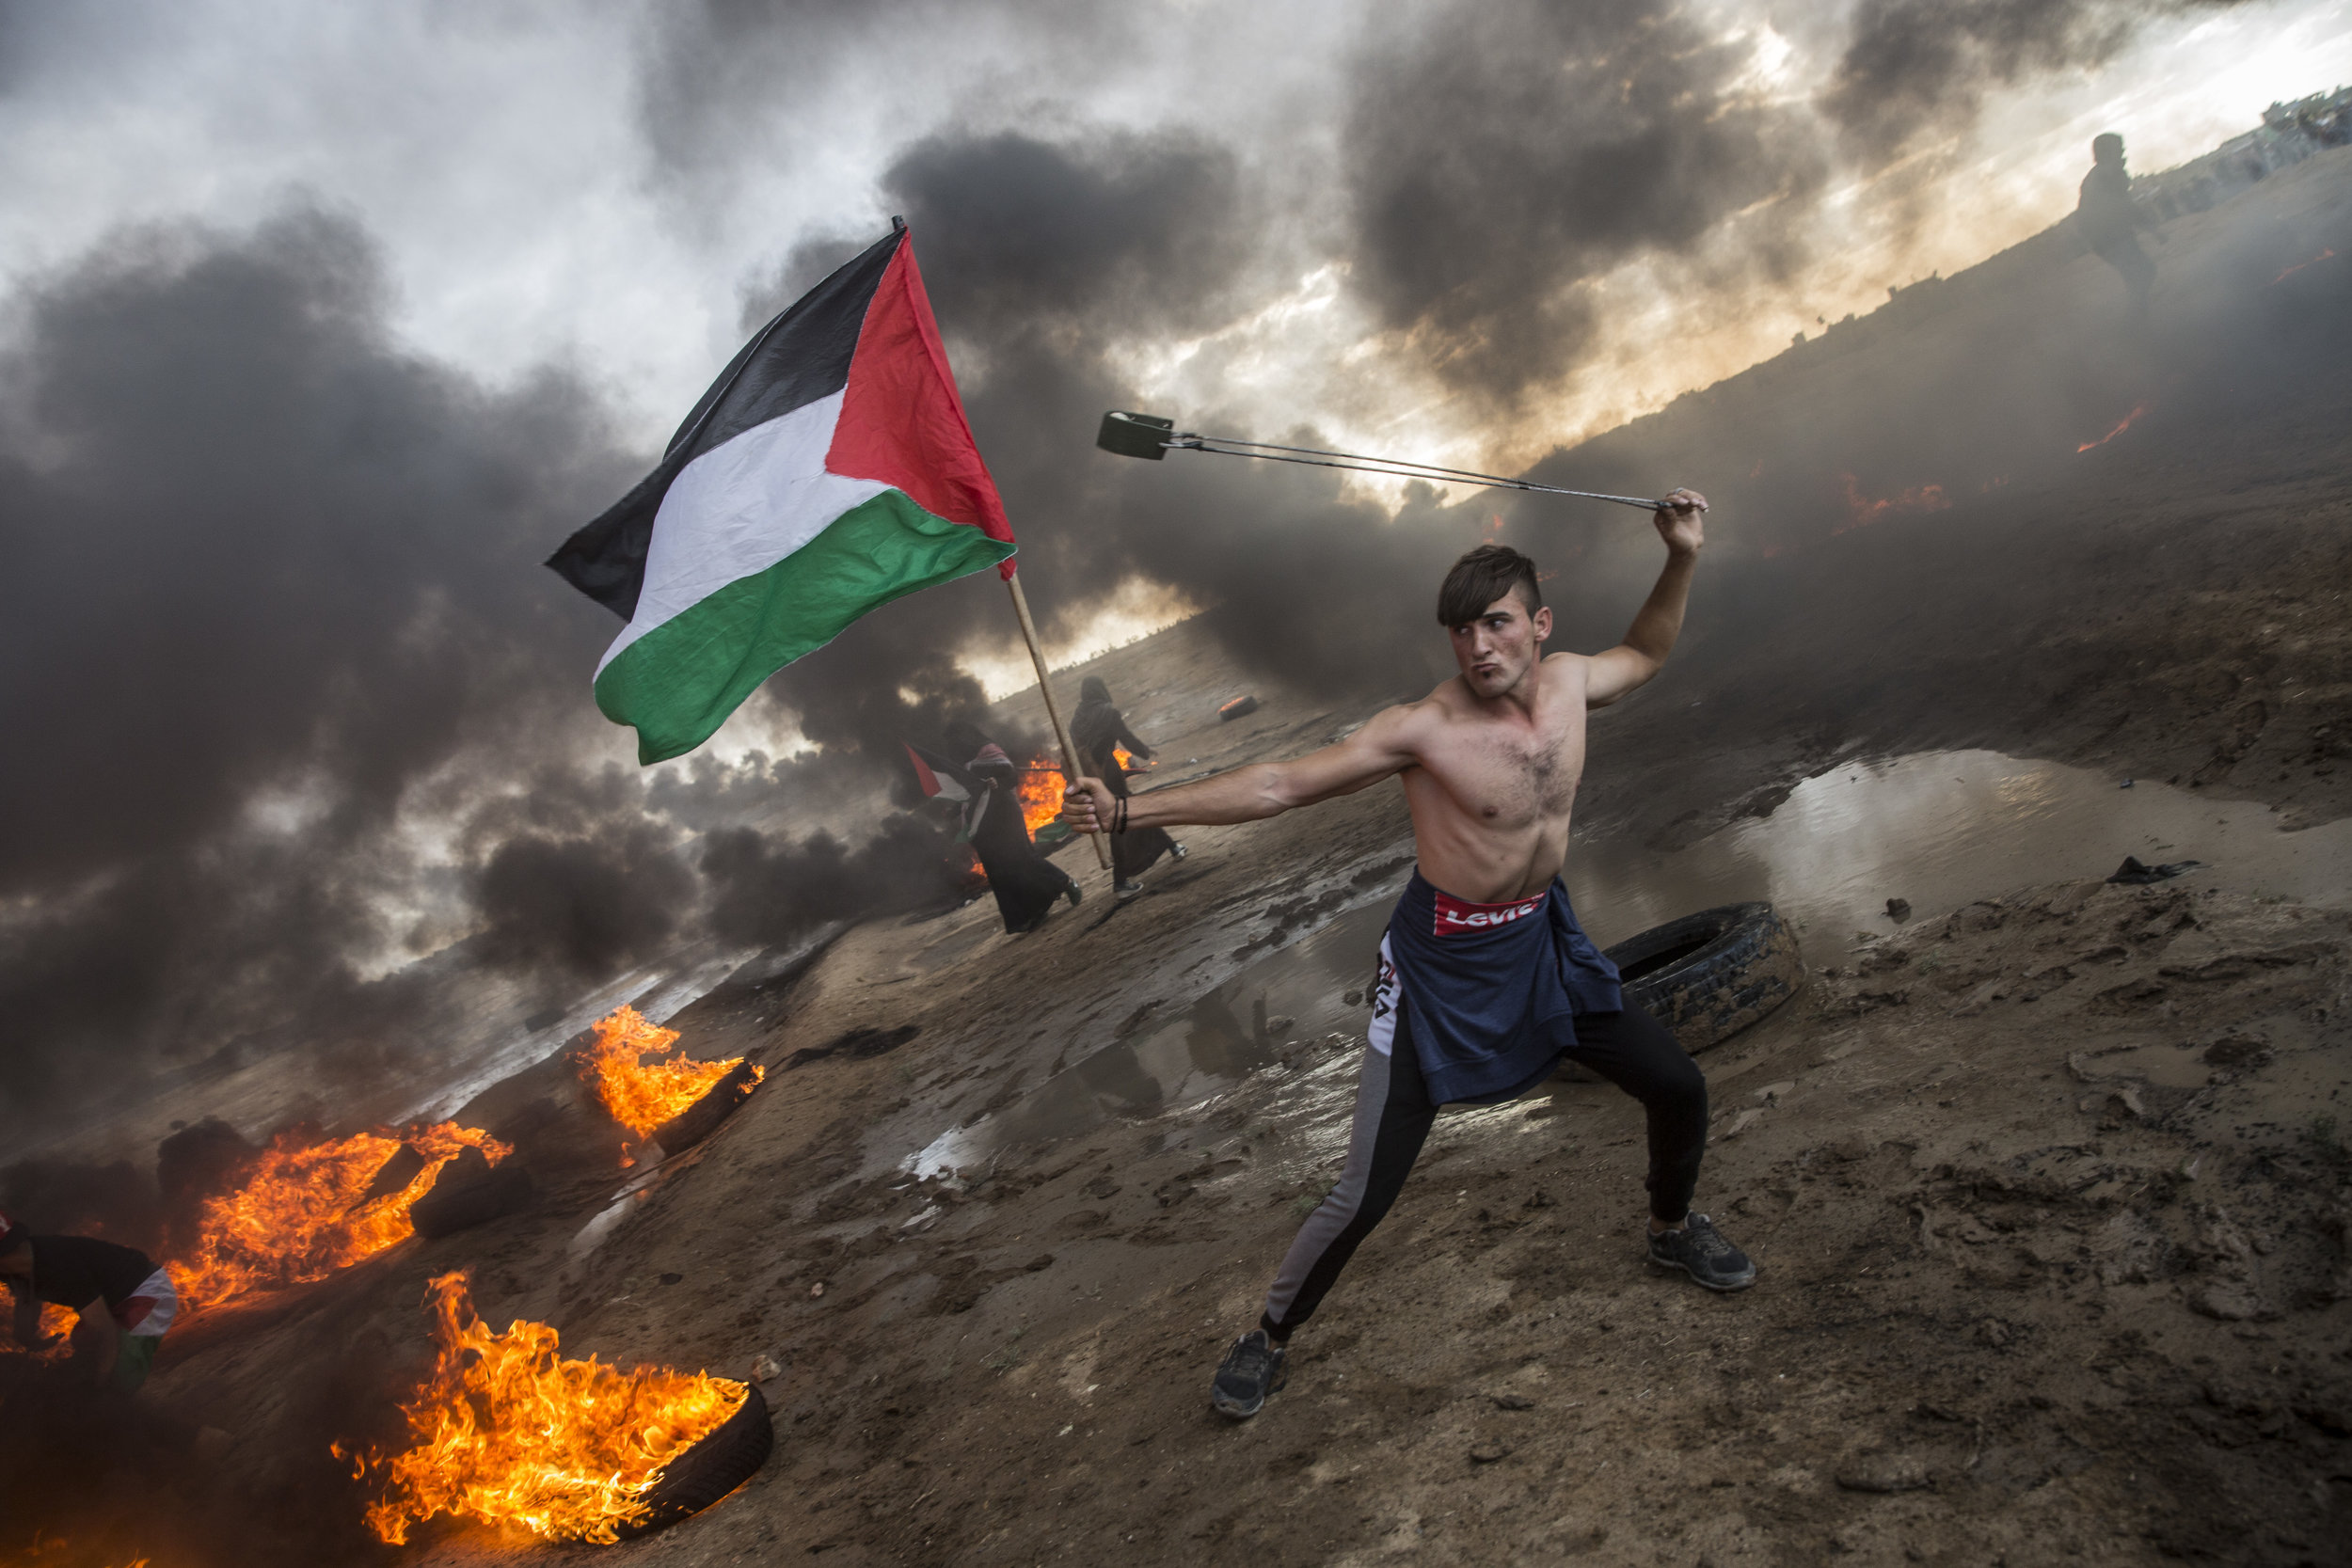 HEIDI LEVINE  heidilevine.photoshelter.com  |  @heidi_levine   Tires burn as Palestinians protestors used sling shots to hurl stones towards Israeli troops along the border of Gaza and Israel east of Gaza City on October 26,2018. Four Palestinians were killed by Israeli military fire during protests at the Gaza-Israel border, Palestinian authorities said. Israeli army helicopters and fighter jets meanwhile attacked three Hamas positions in the northern Gaza strip.